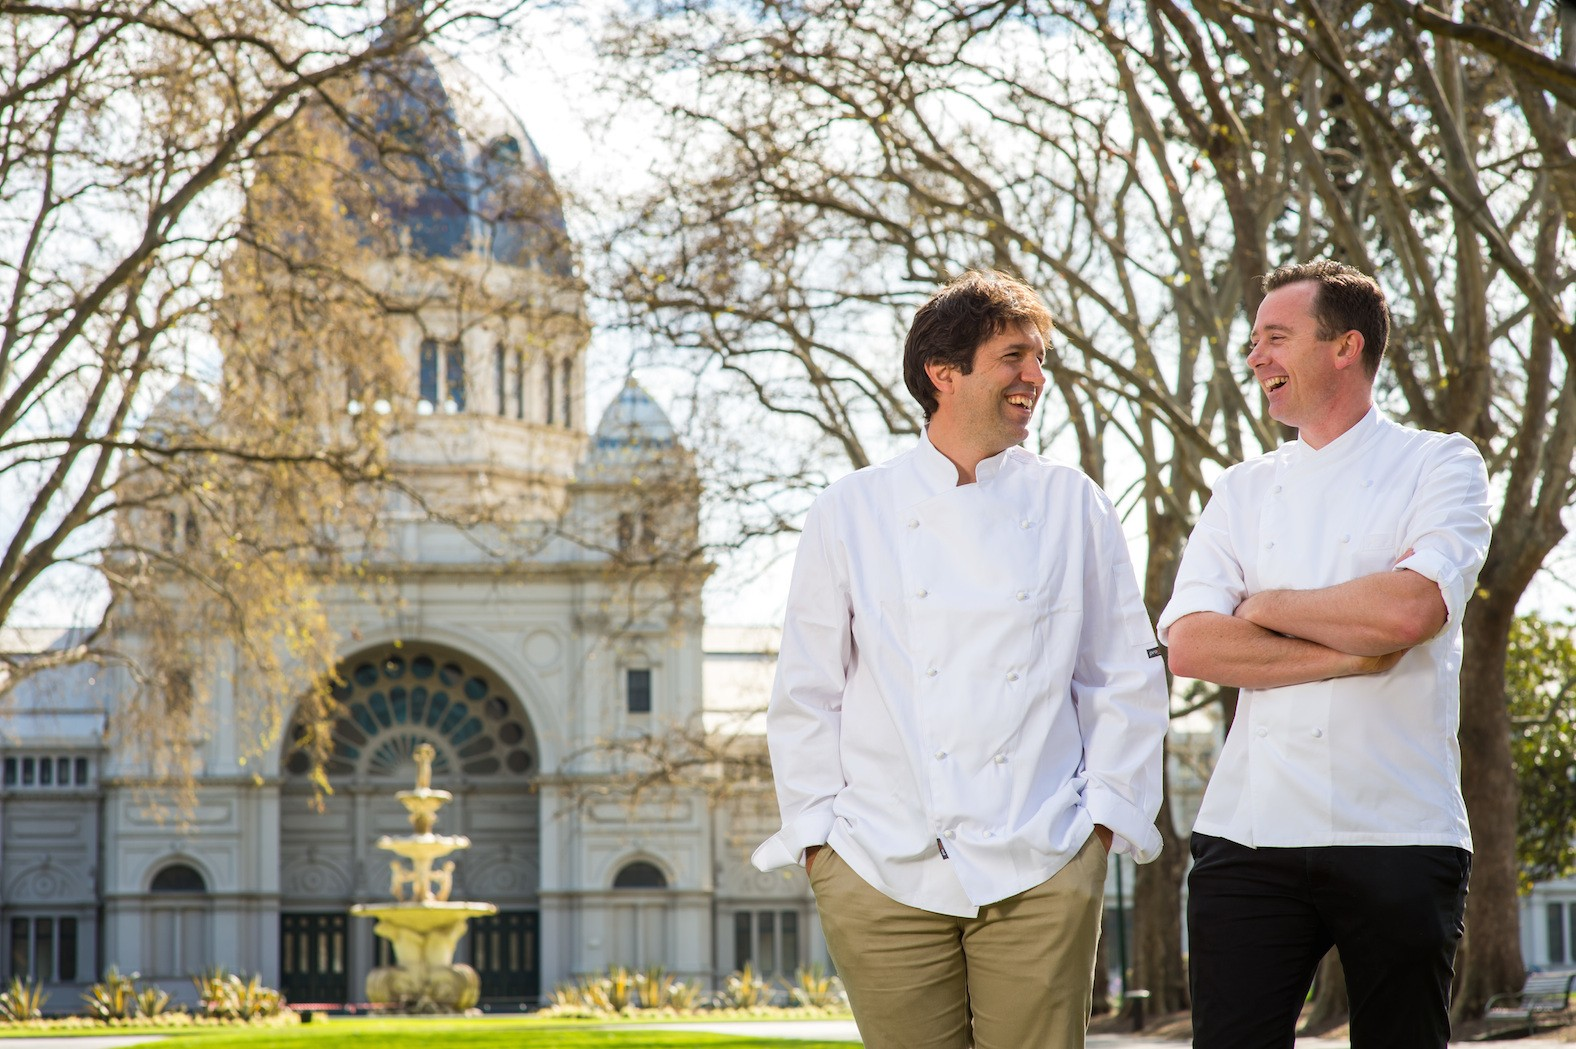 The World's 50 Best Restaurant Awards Travel This Magnificent Life